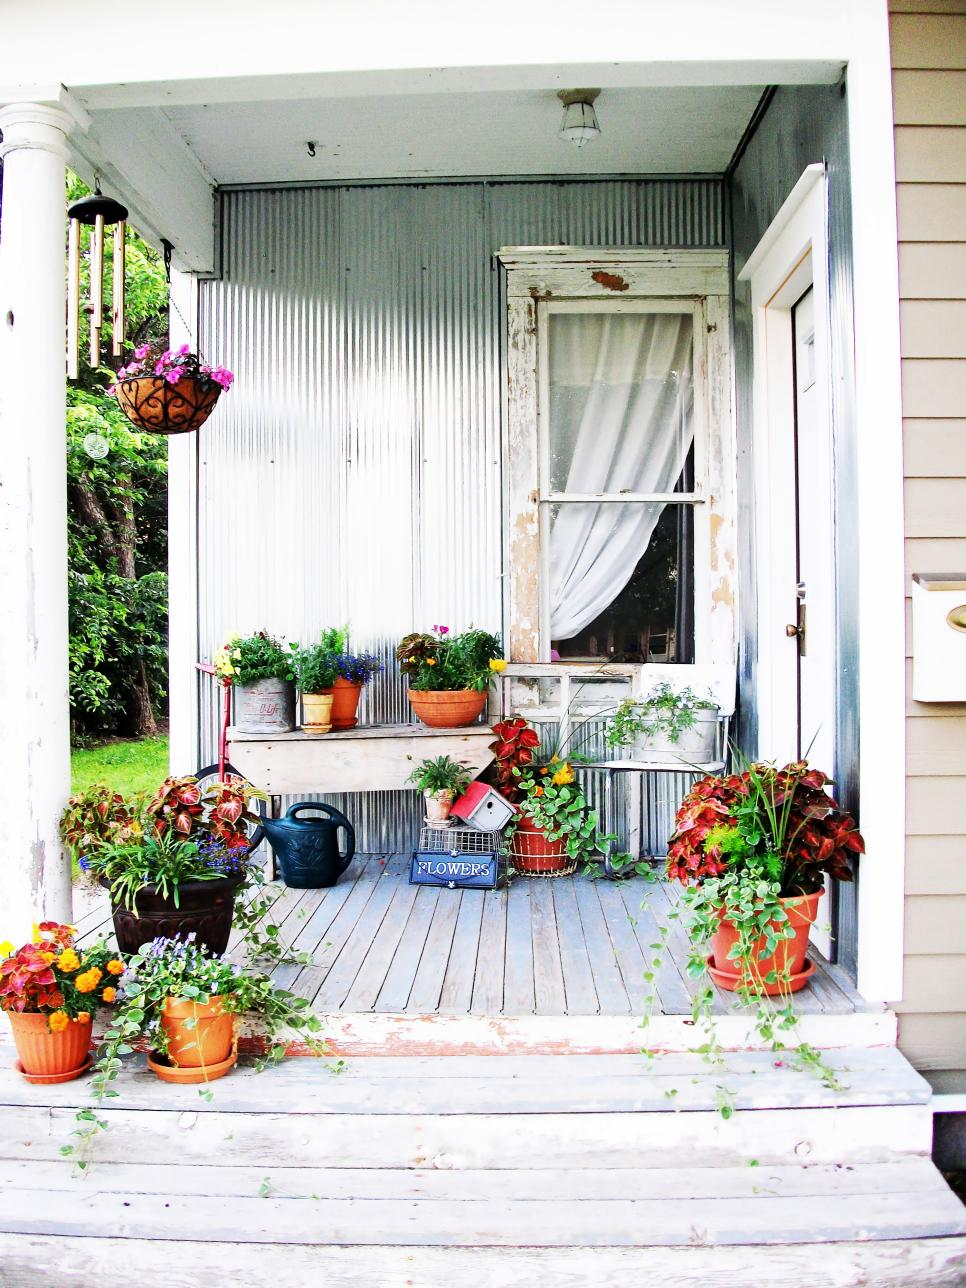 Shabby chic decorating ideas for porches and gardens hgtv Outdoor home design ideas